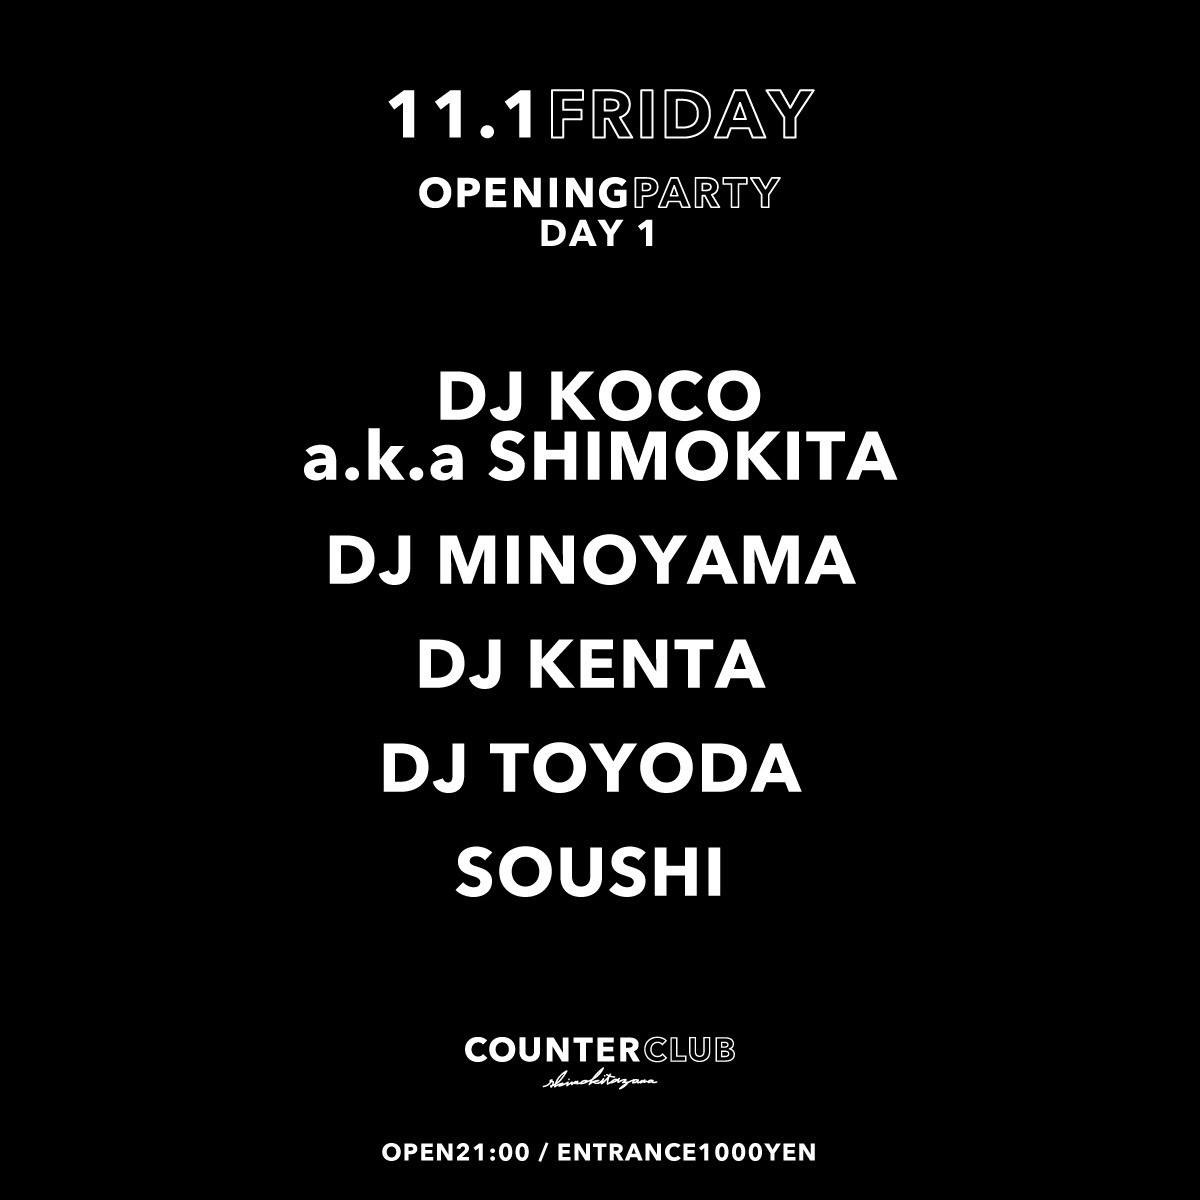 COUNTER CLUB Opening Party Day1